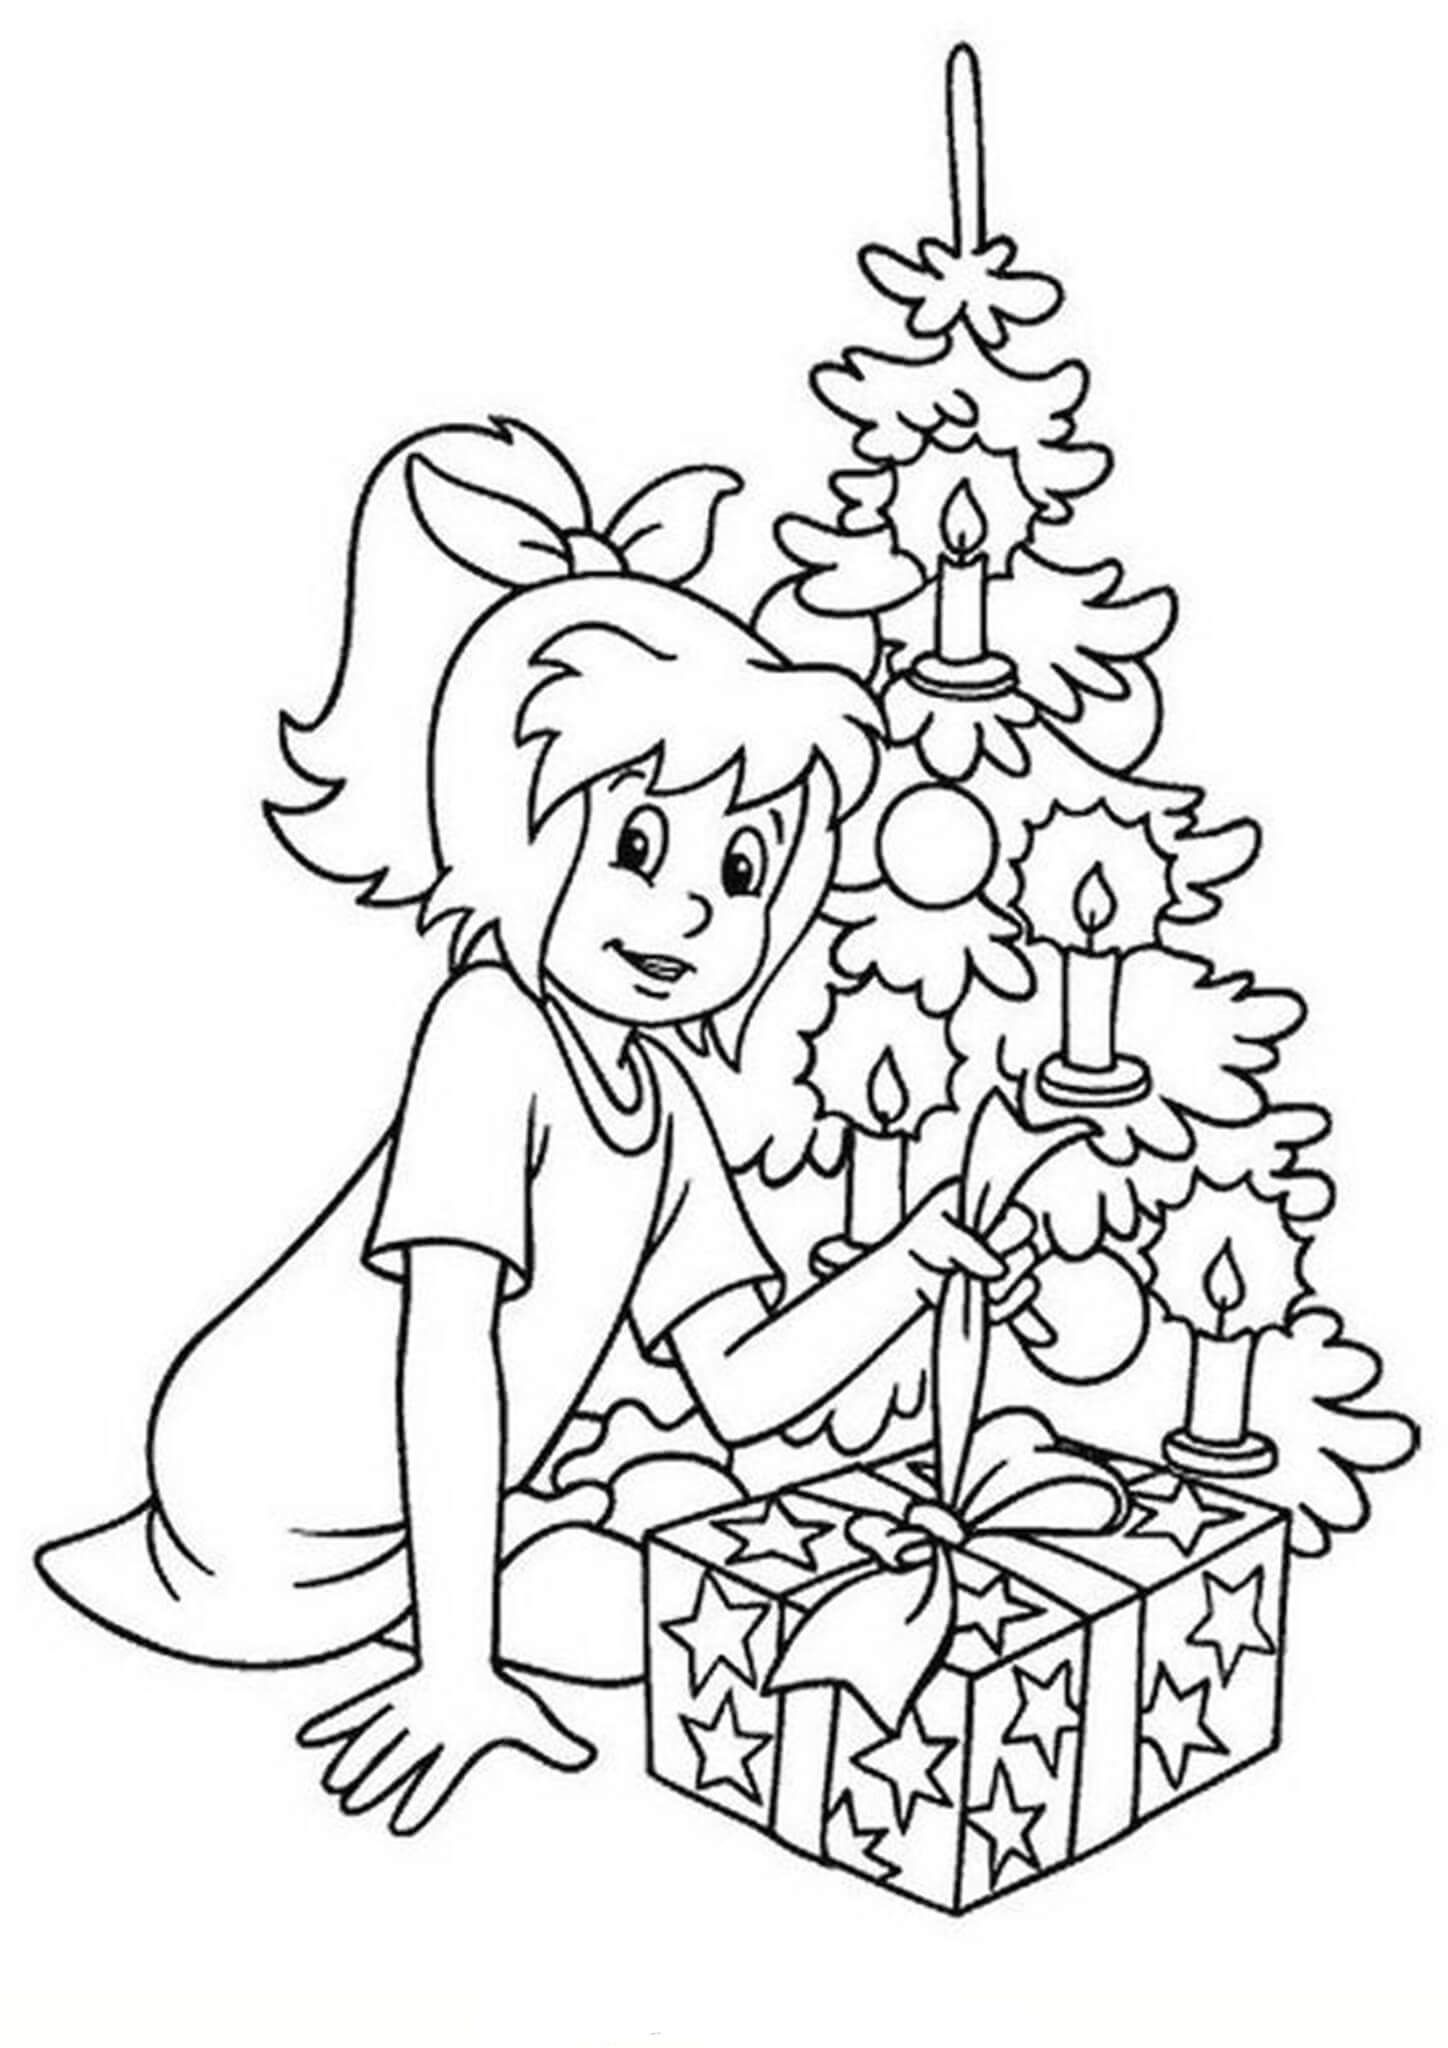 Free Easy To Print Christmas Tree Coloring Pages Tree Coloring Page Christmas Tree Coloring Page Valentines Day Coloring Page